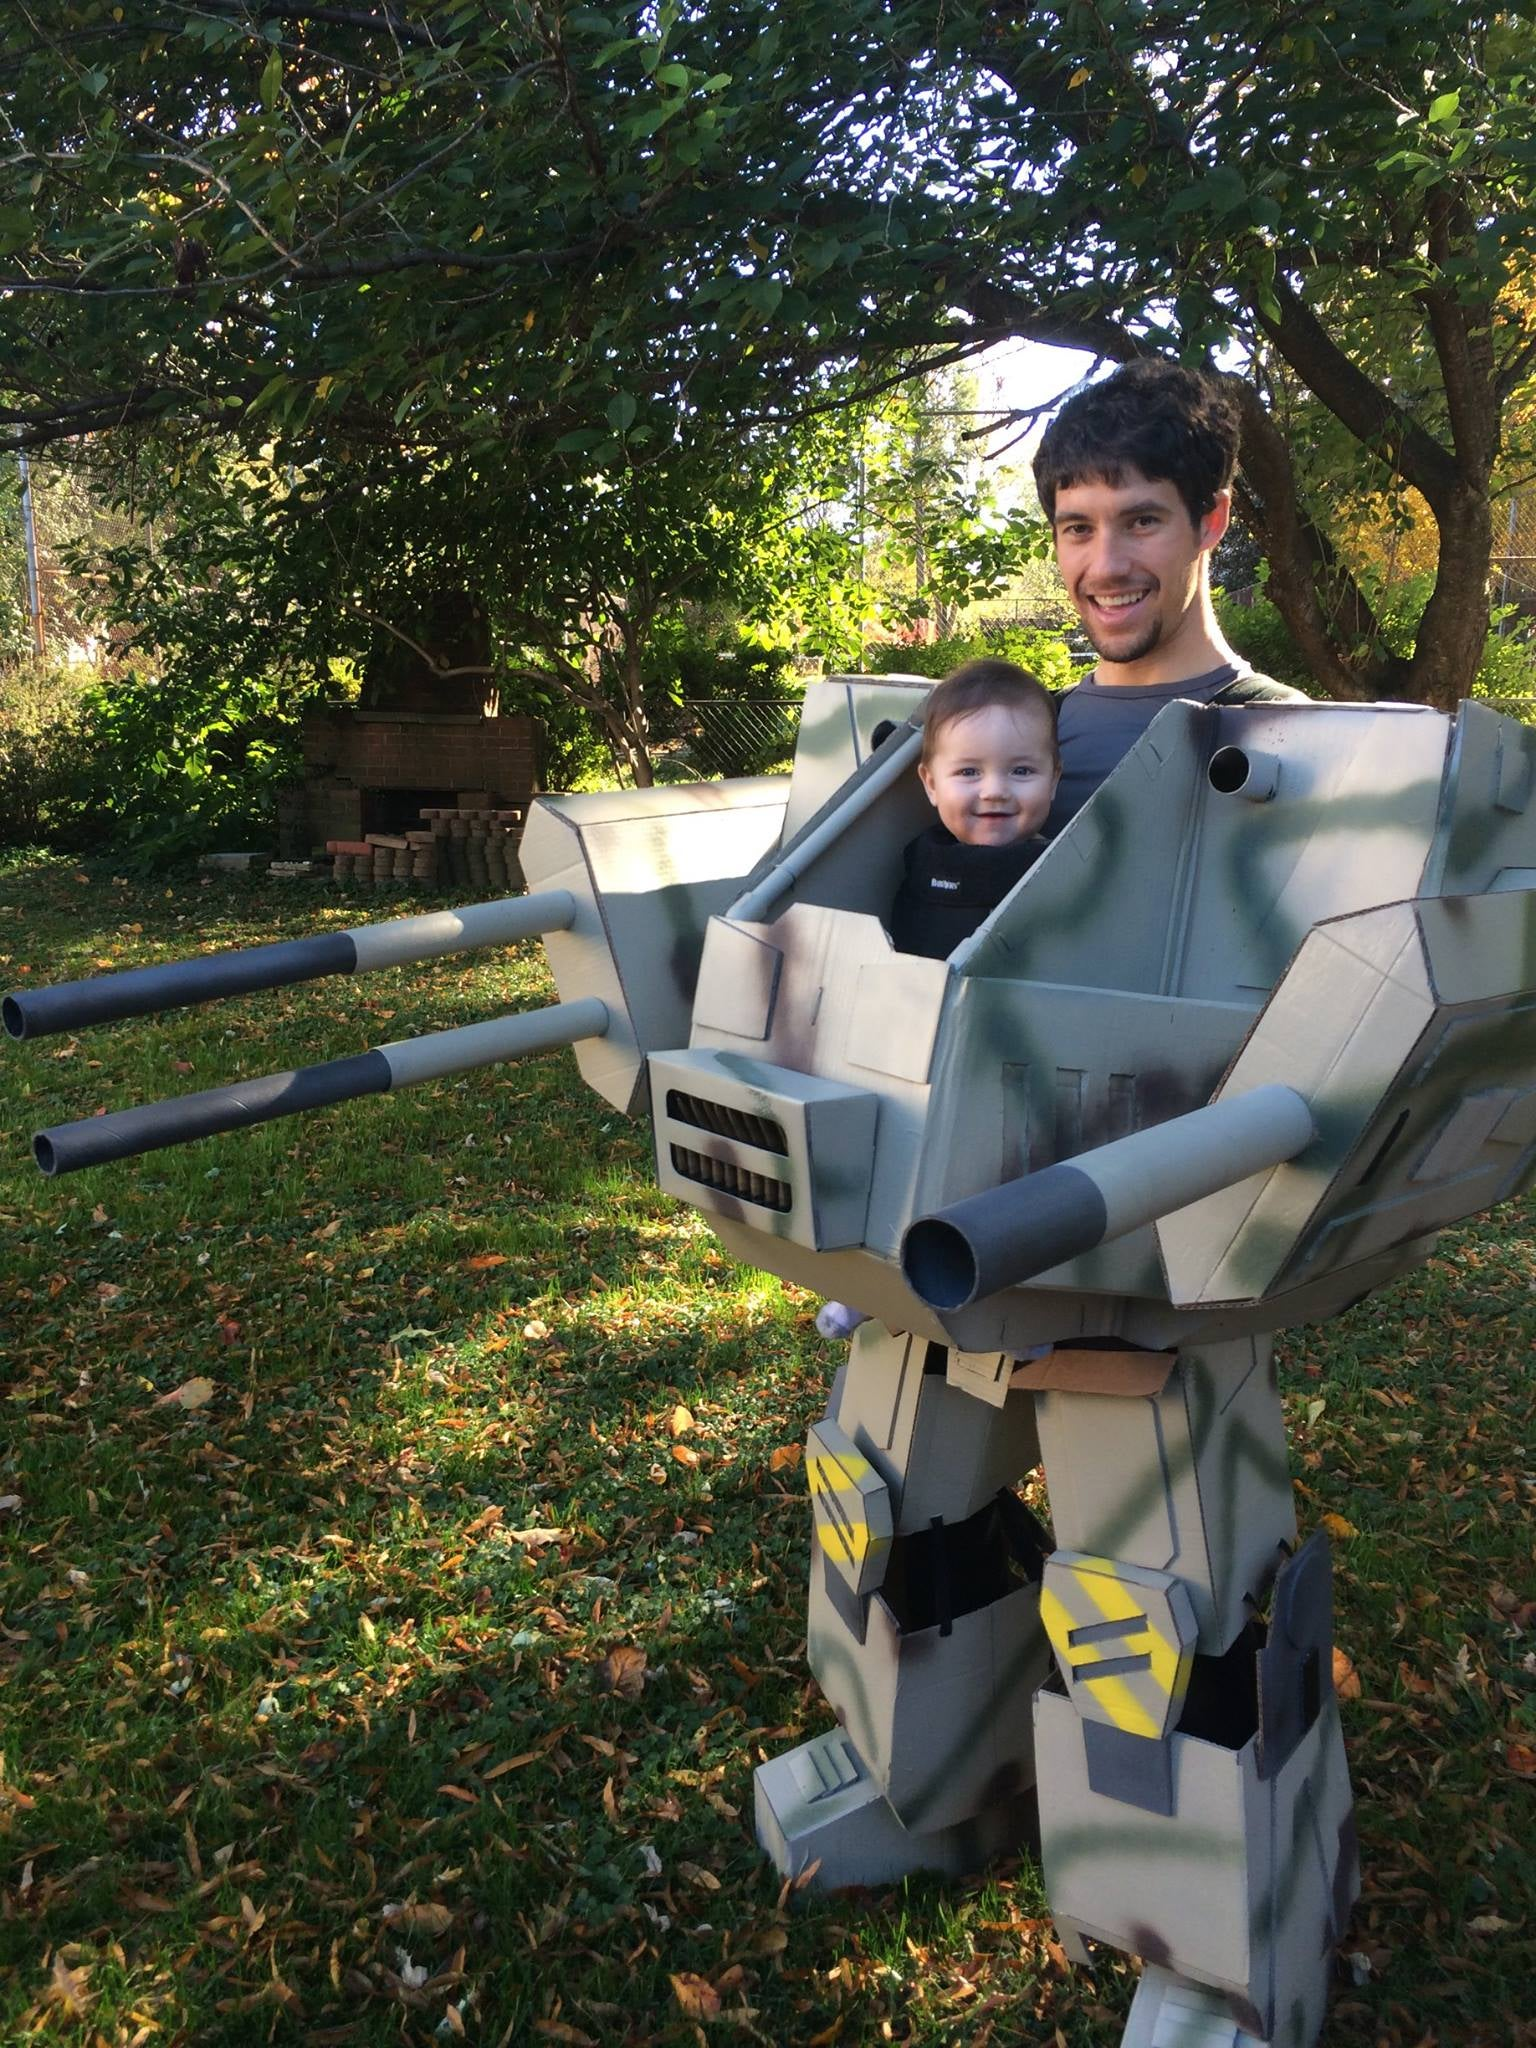 MechWarrior Baby Will Destroy Your Home, Eat Your Candy